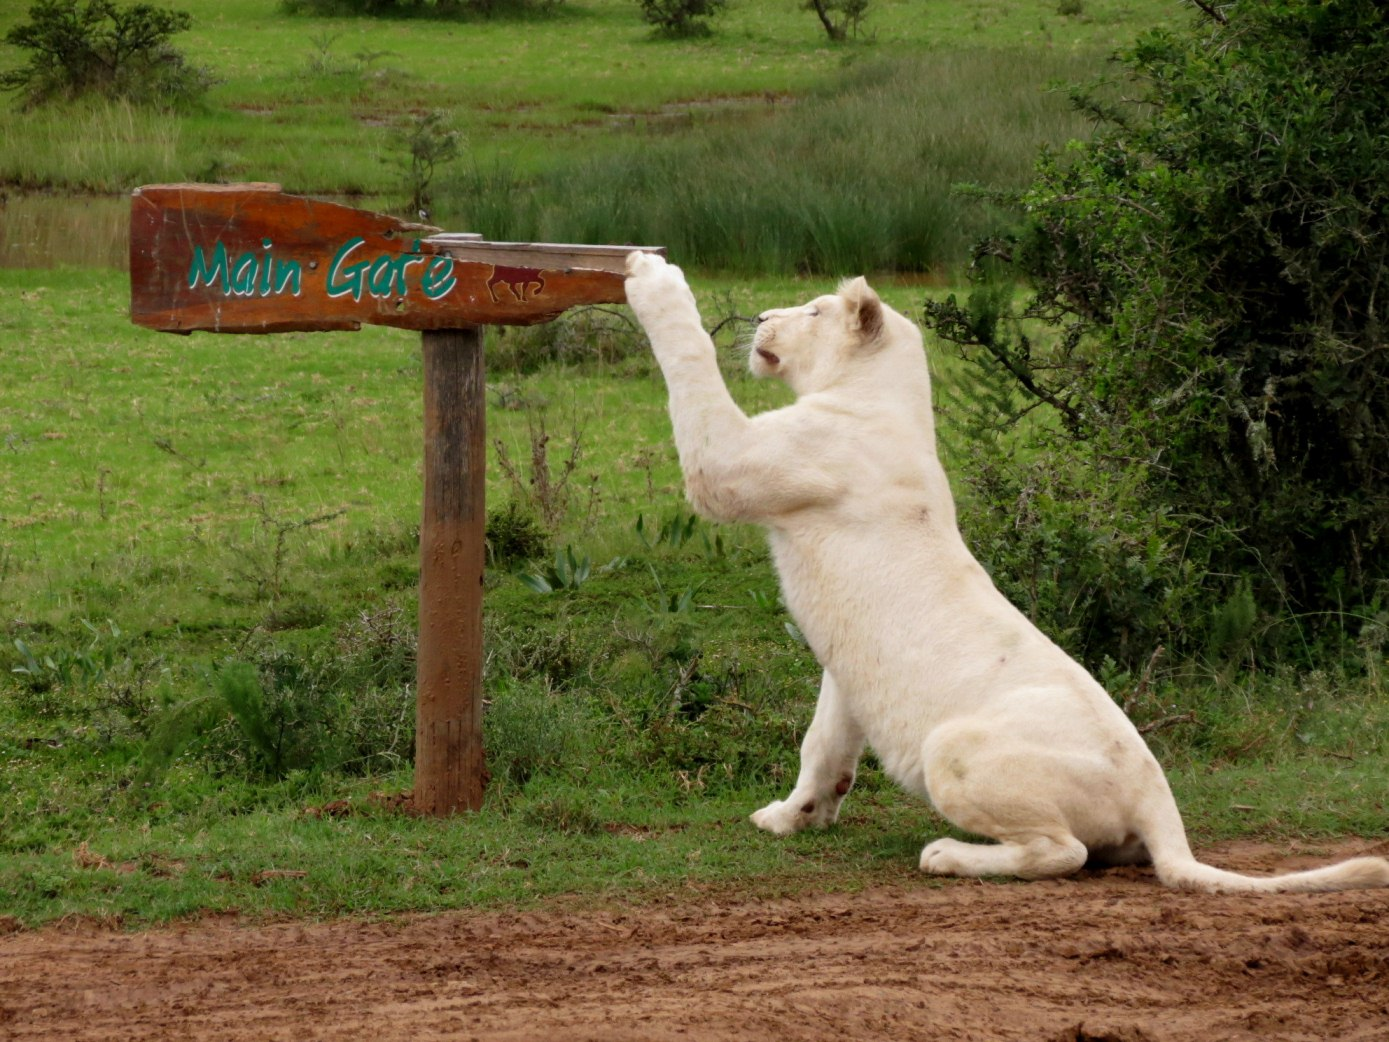 The beautiful white lioness of Pumba game reserve attempts to adjust a sign